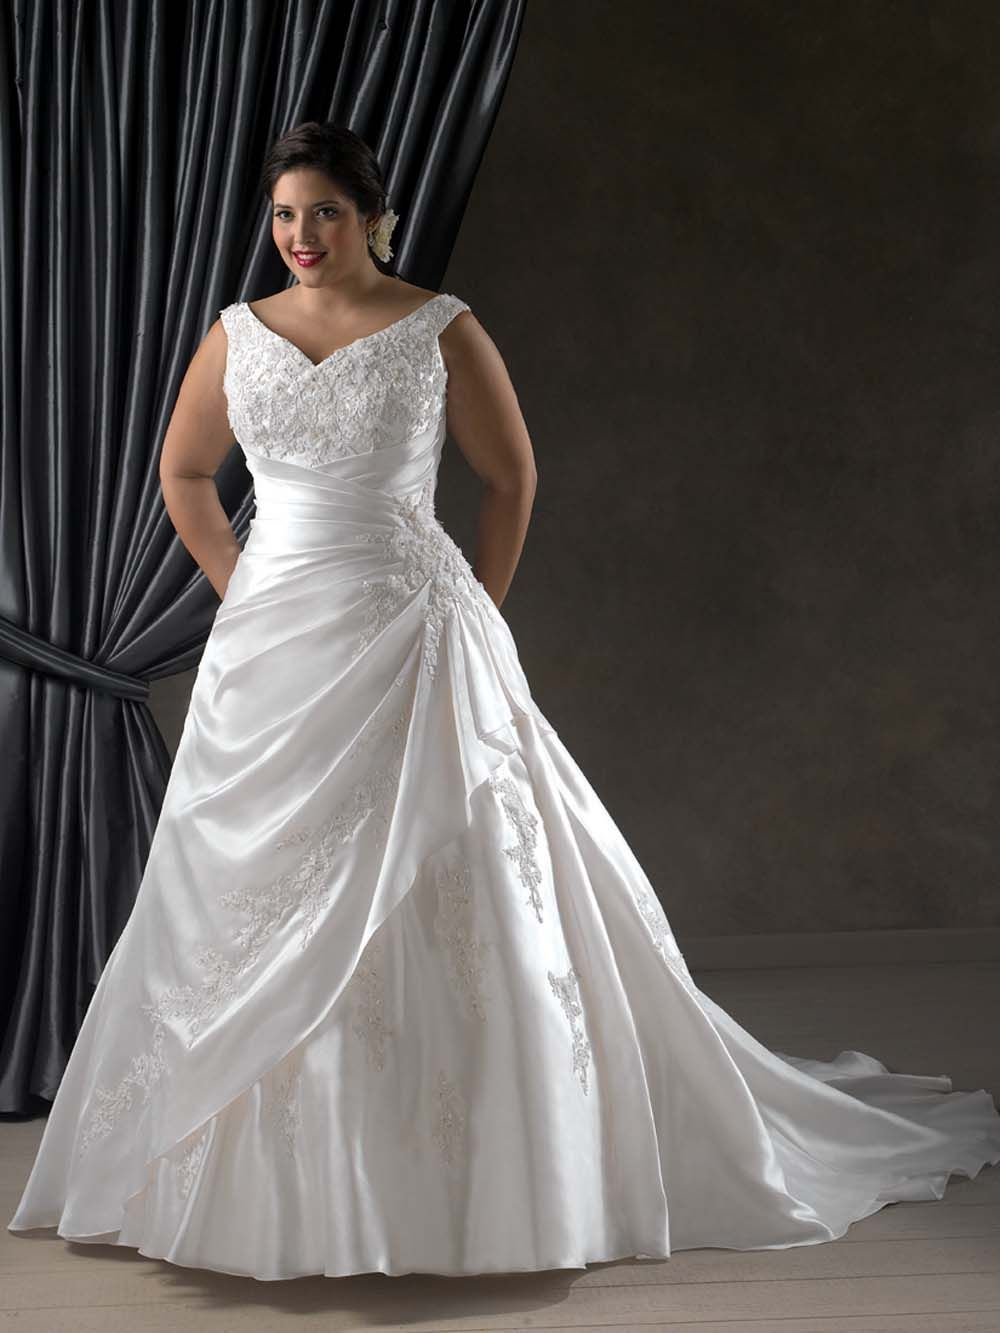 Plus size bridesmaid dresses louisville ky fashion dresses plus size bridesmaid dresses louisville ky ombrellifo Images